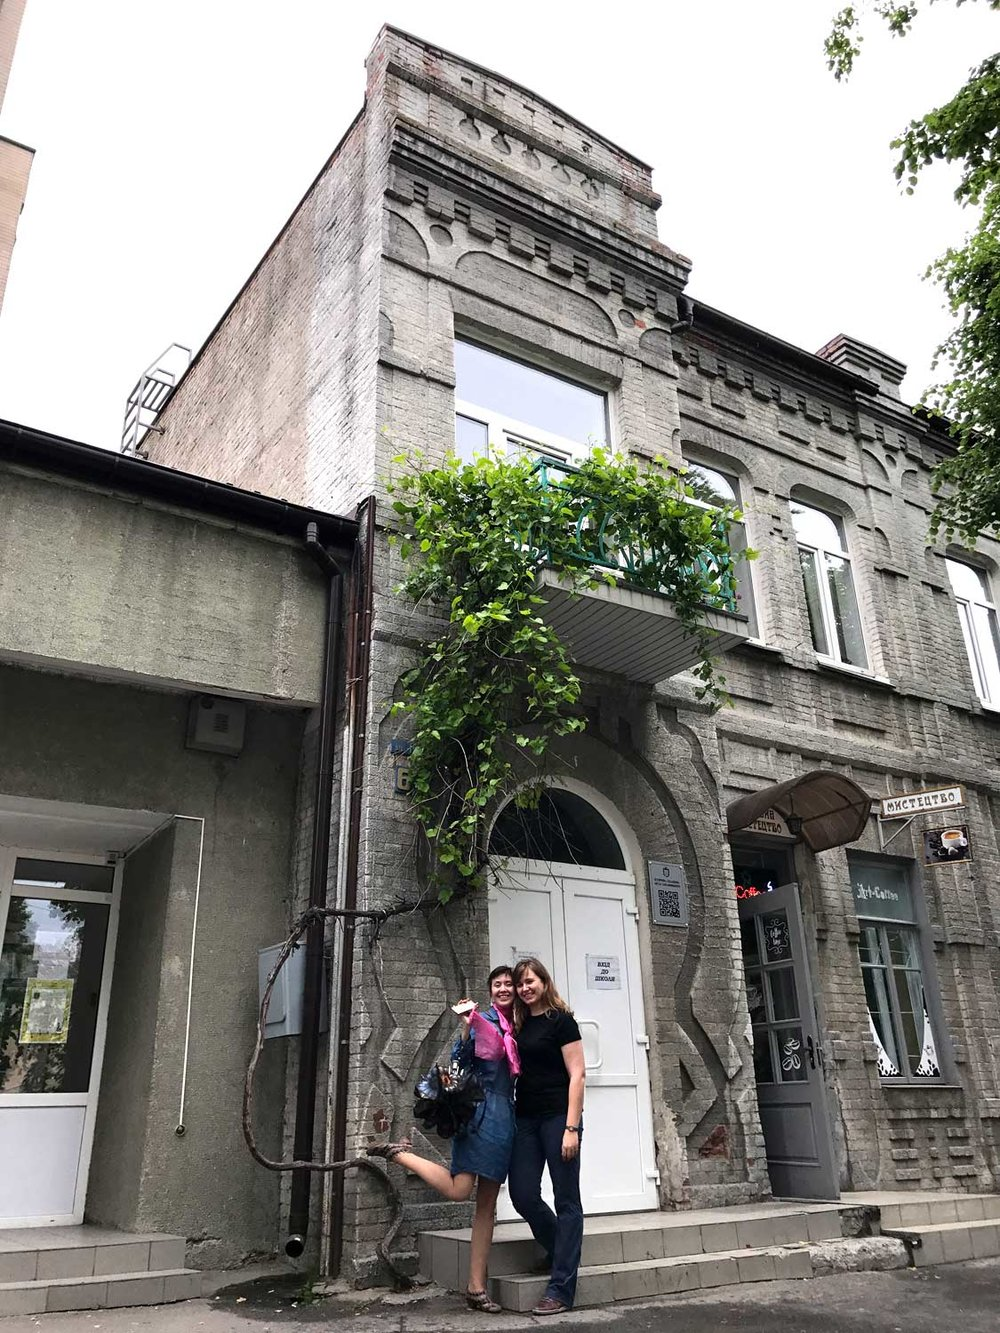 Where it all began: me with my friend Larisa, aka Lara, next to the building of our art school.